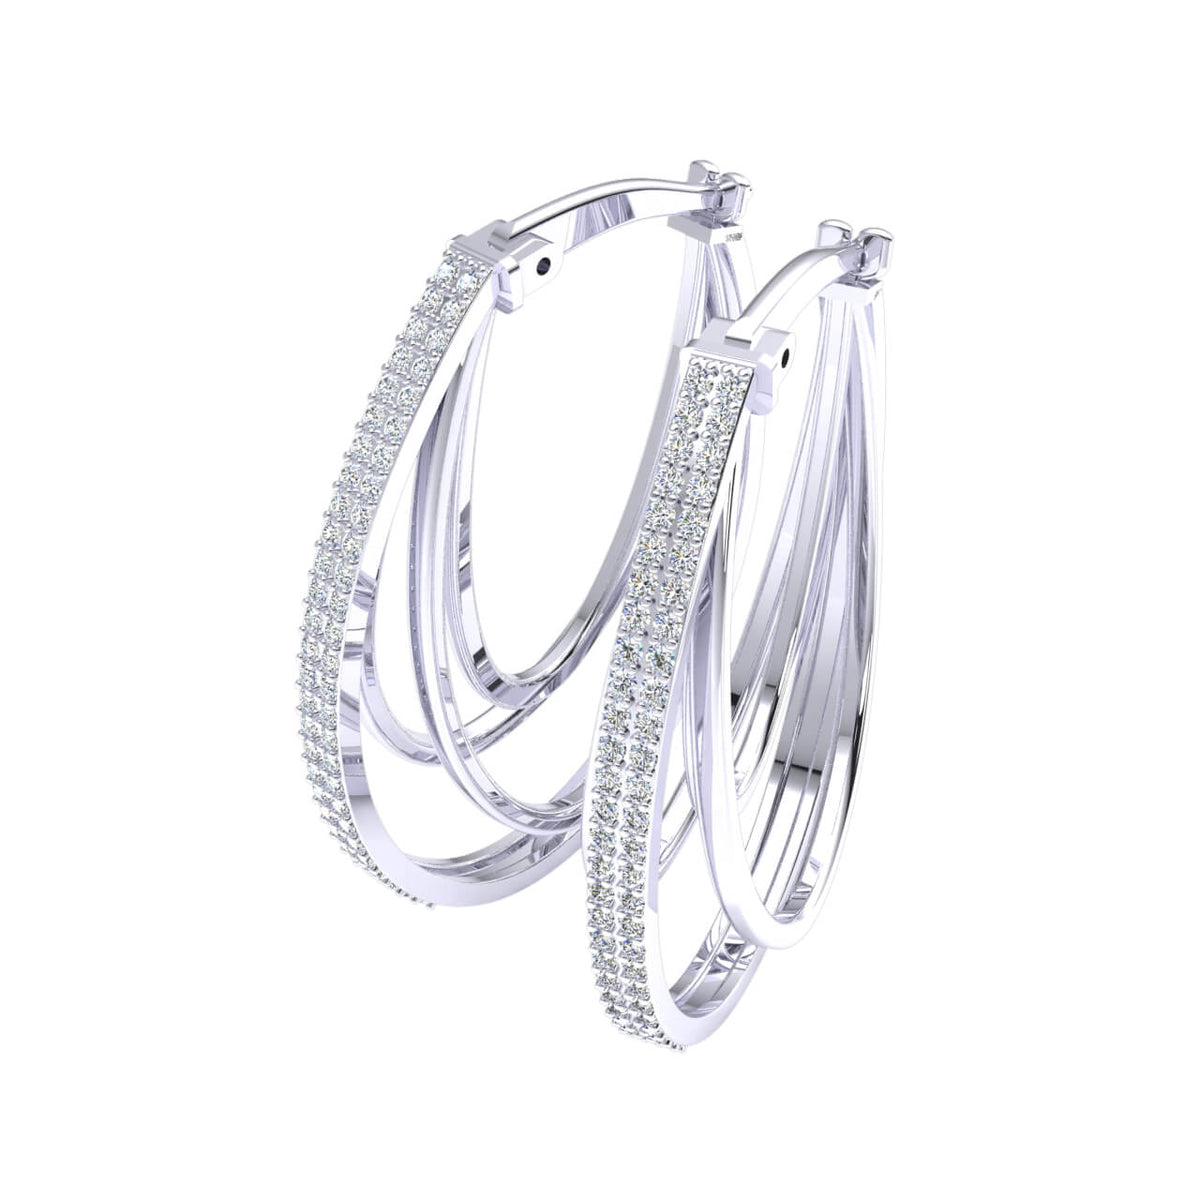 0.55 Ct Round GH I1-I2 Diamond Hoops Womens Fancy Earrings 925 Sterling Silver